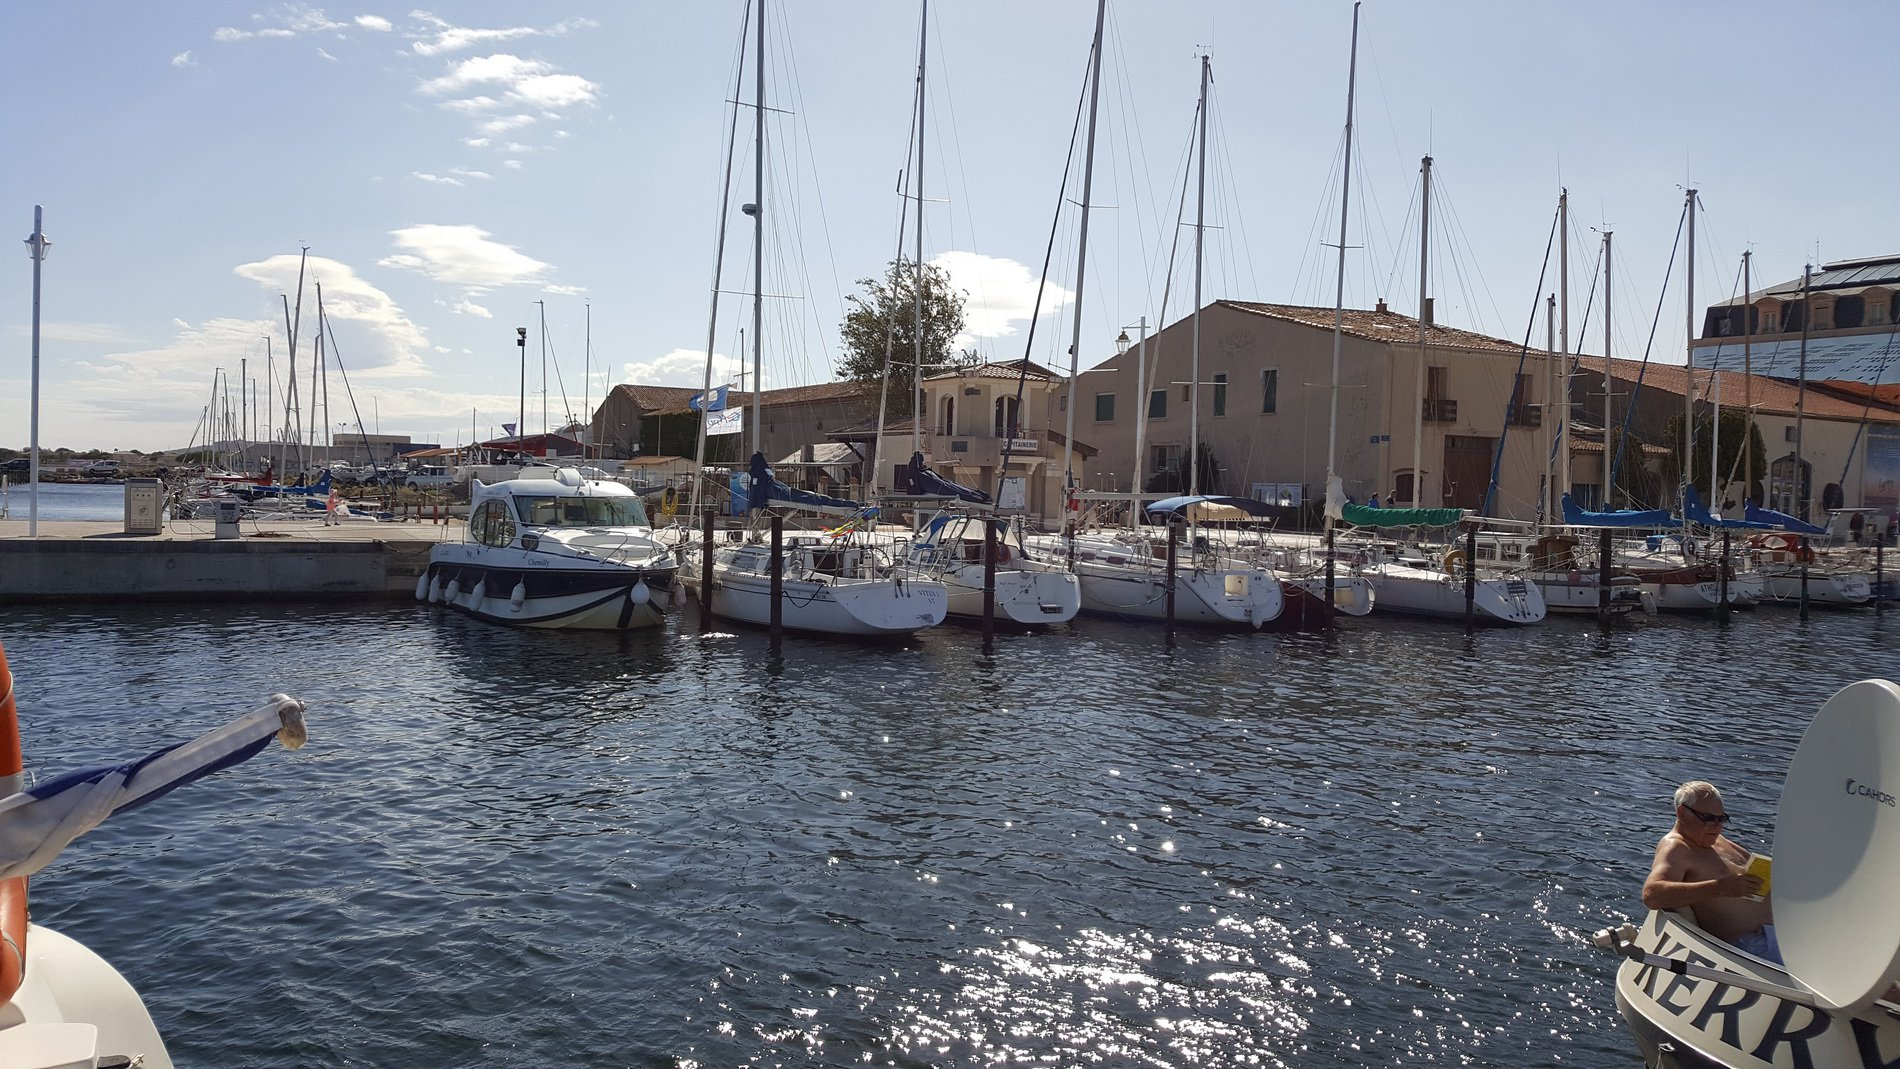 New build program in the port of Marseillan